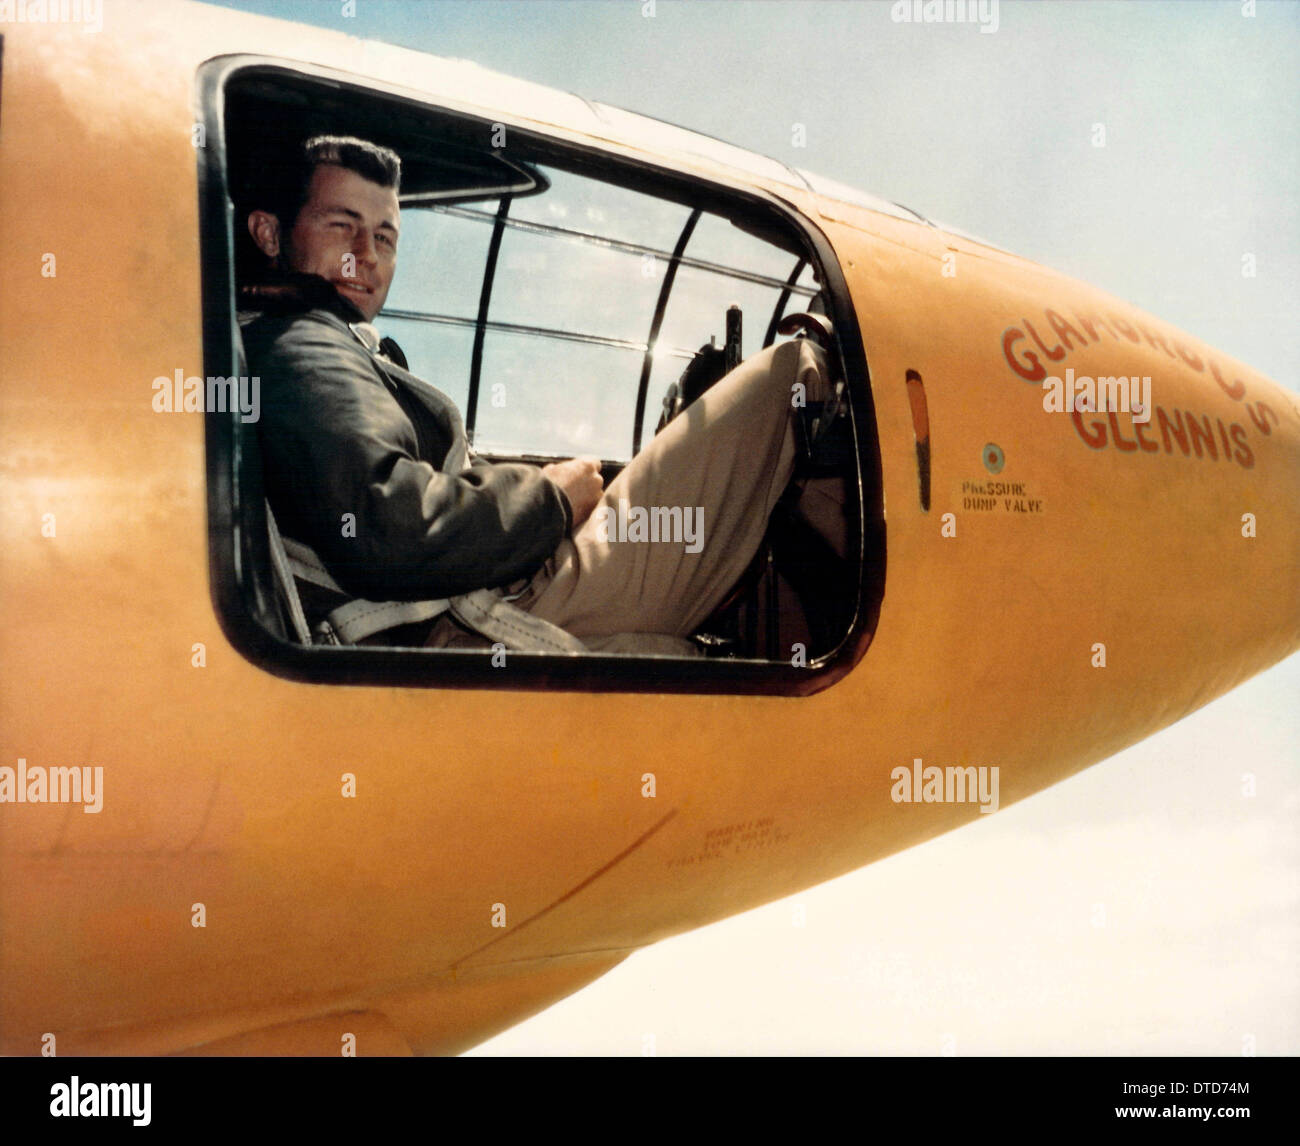 US Air Force test pilot Captain Chuck Yeager sitting in the cockpit of Glamorous Glennis the Bell X-1 aircraft that Stock Foto